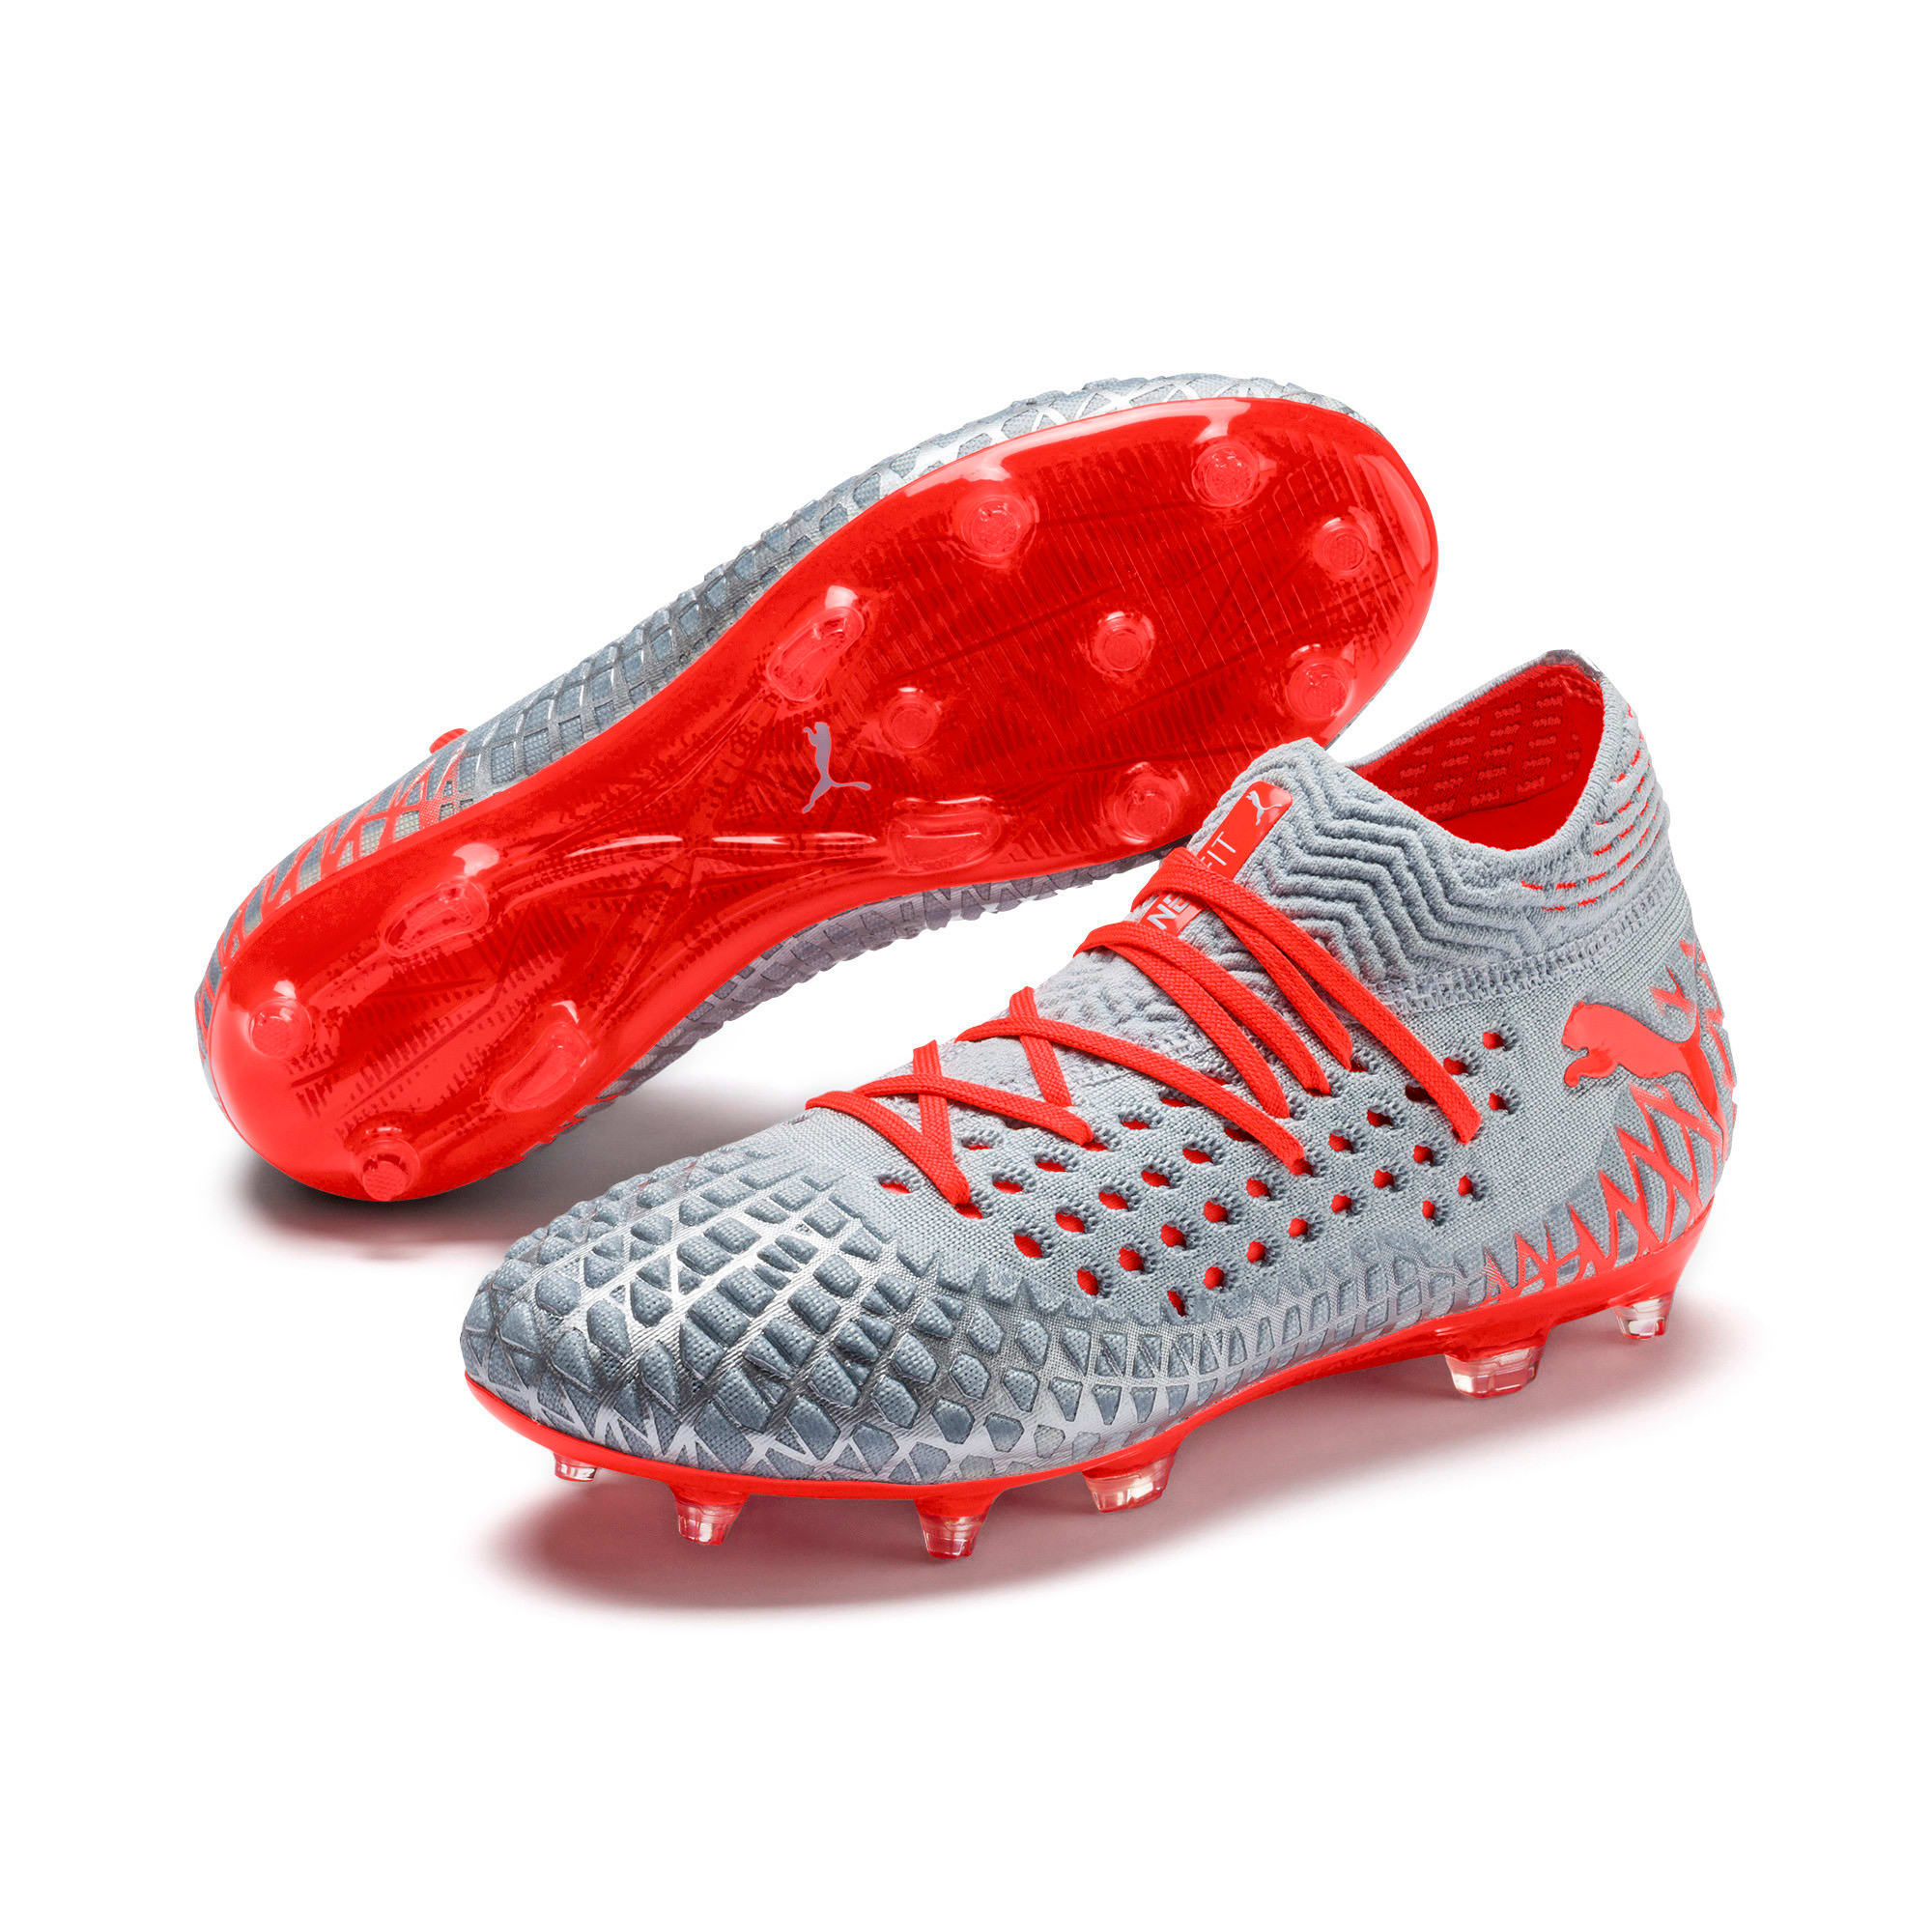 Thumbnail 2 of FUTURE 4.1 NETFIT Youth Football Boots, Blue-Nrgy Red-High Risk Red, medium